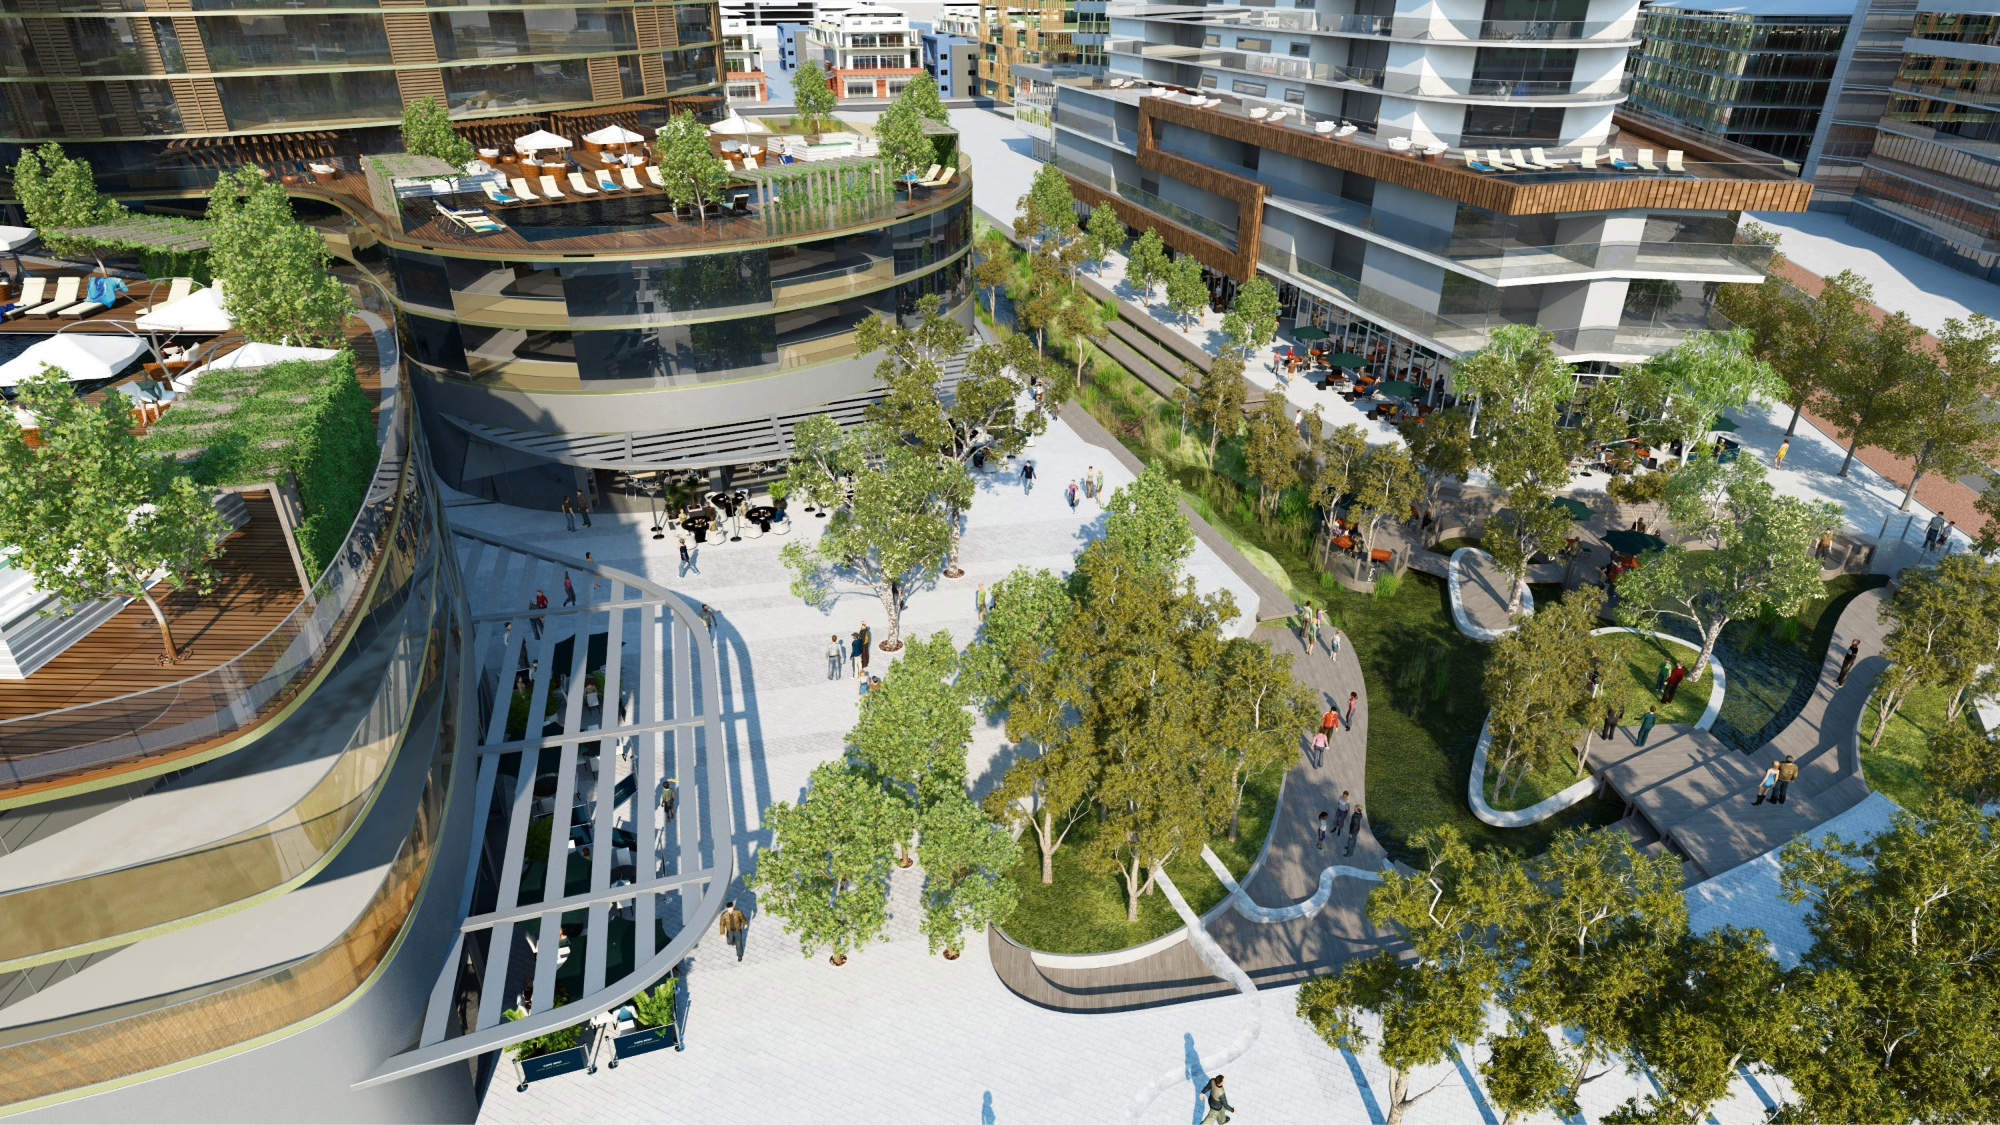 Plans for Canning city centre were unveiled last week.